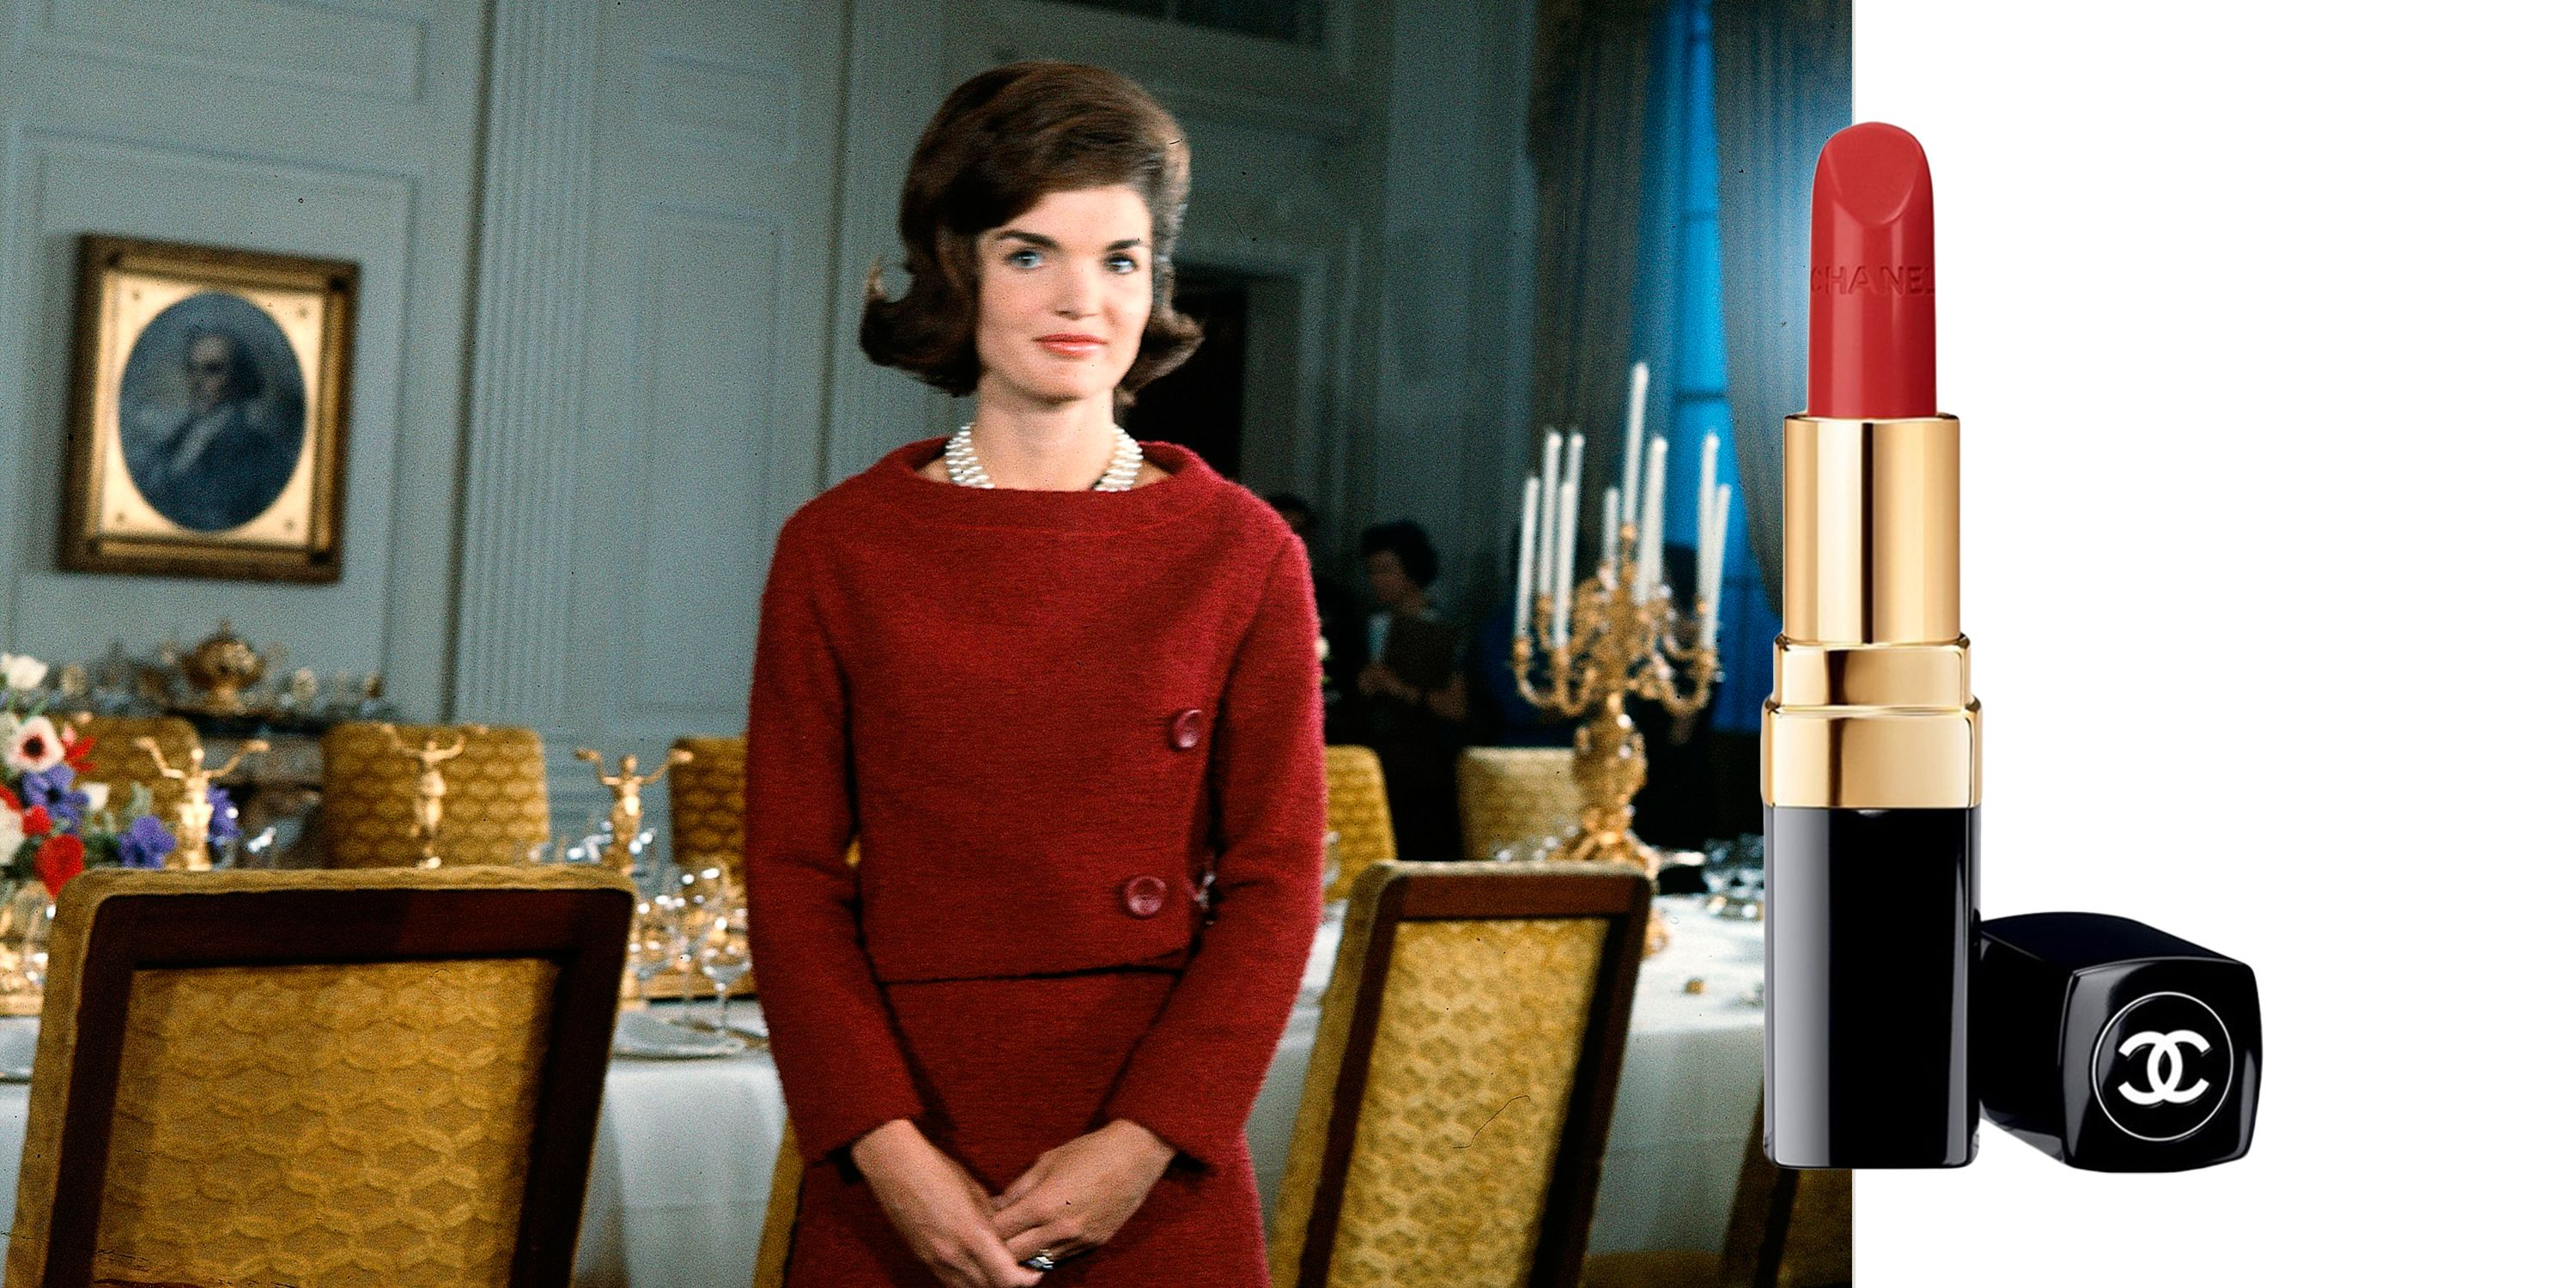 Jackie Kennedy Beauty Secrets Hair Makeup And Perfume Advice Tas Jacklyn Girl Accessories From Jacqueline Onassis